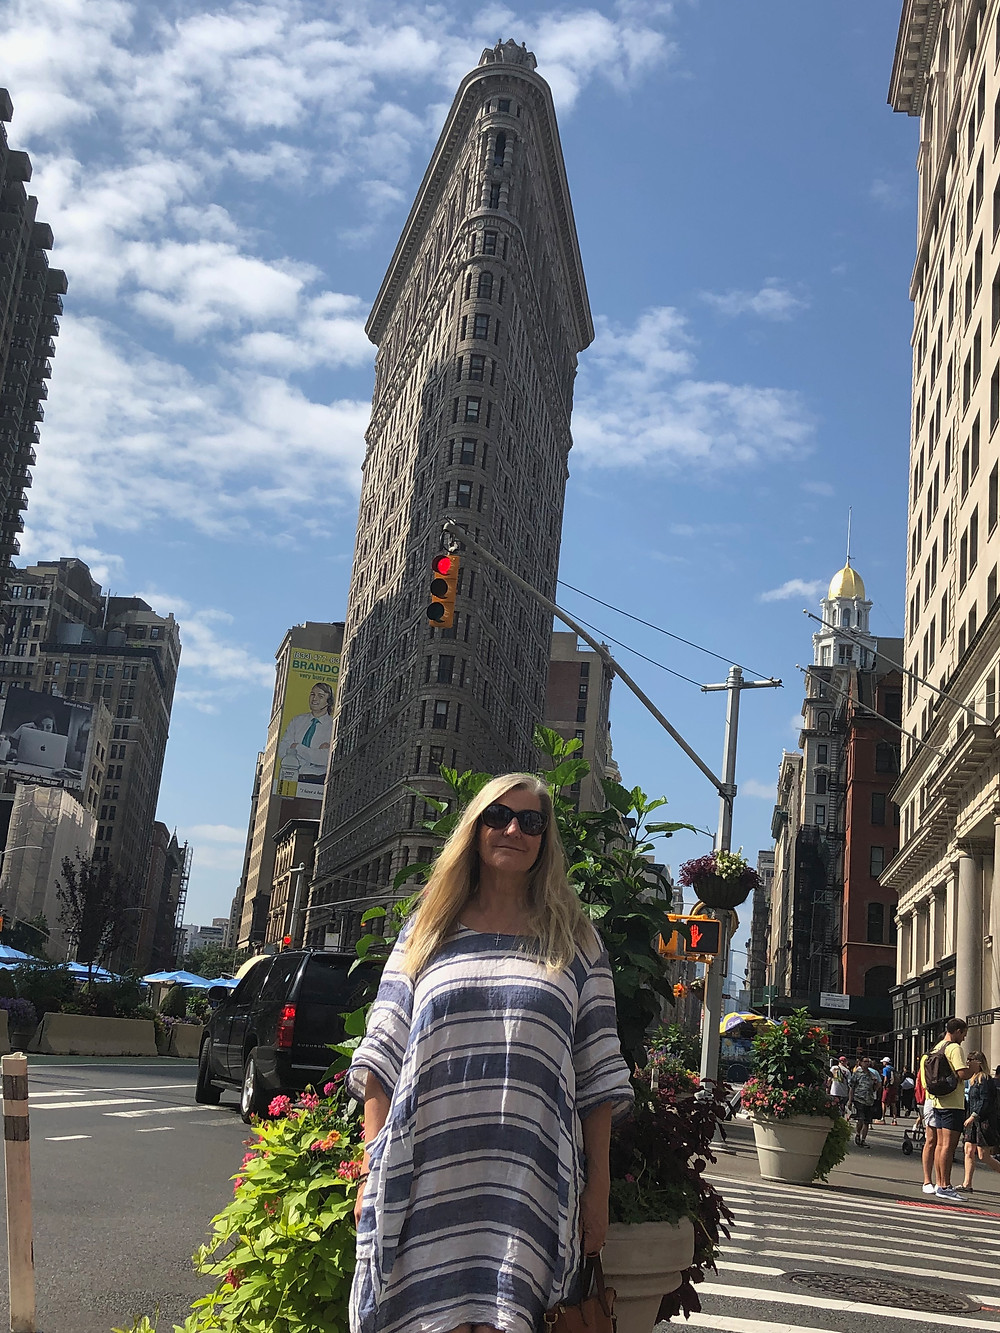 Siri Kay Jostad of Wander Away with Siri Kay standing in front of the Flatiron building in New York City